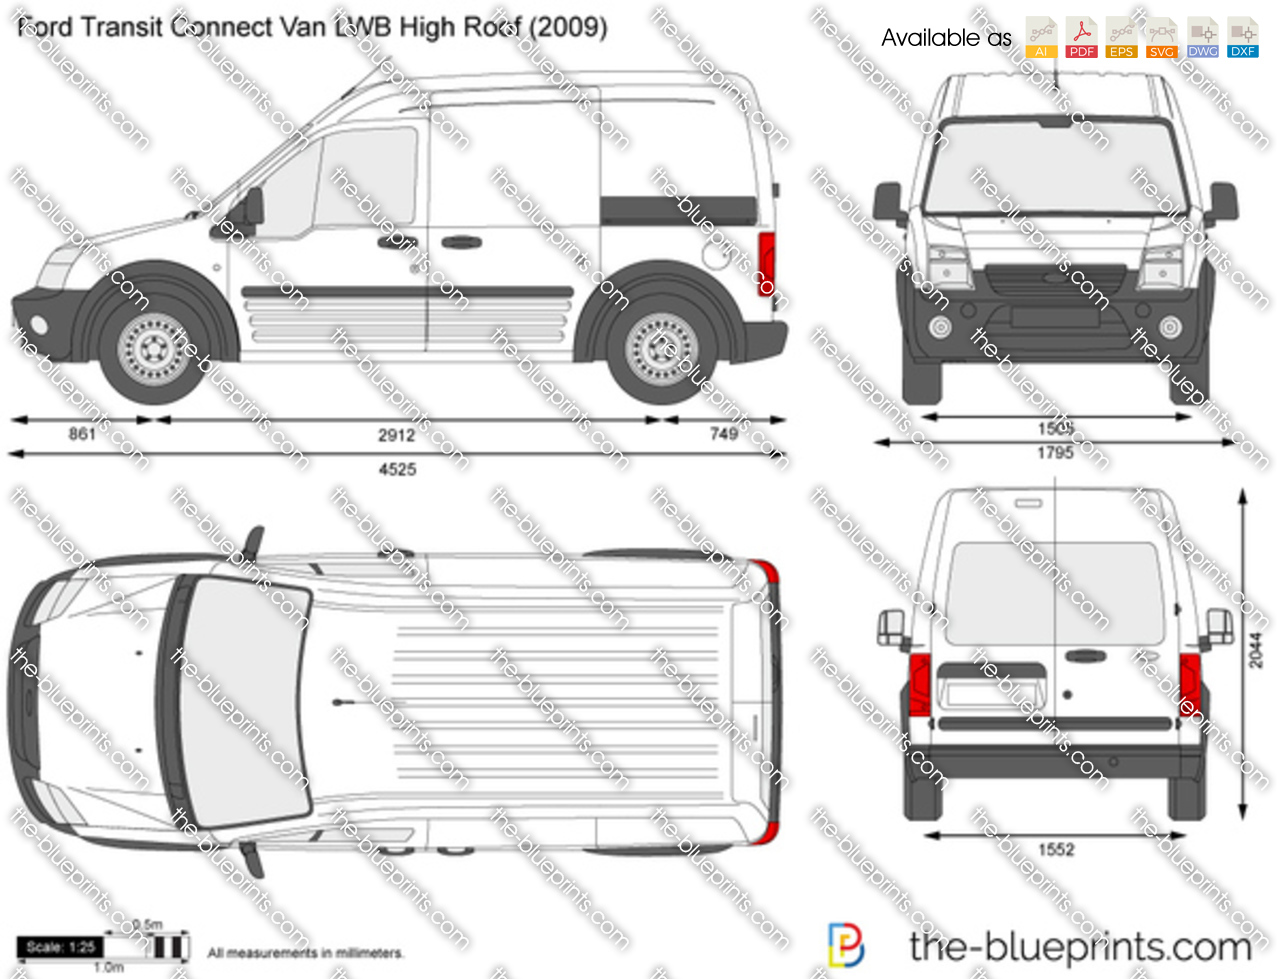 Ford Transit Connect Van LWB High Roof 2003